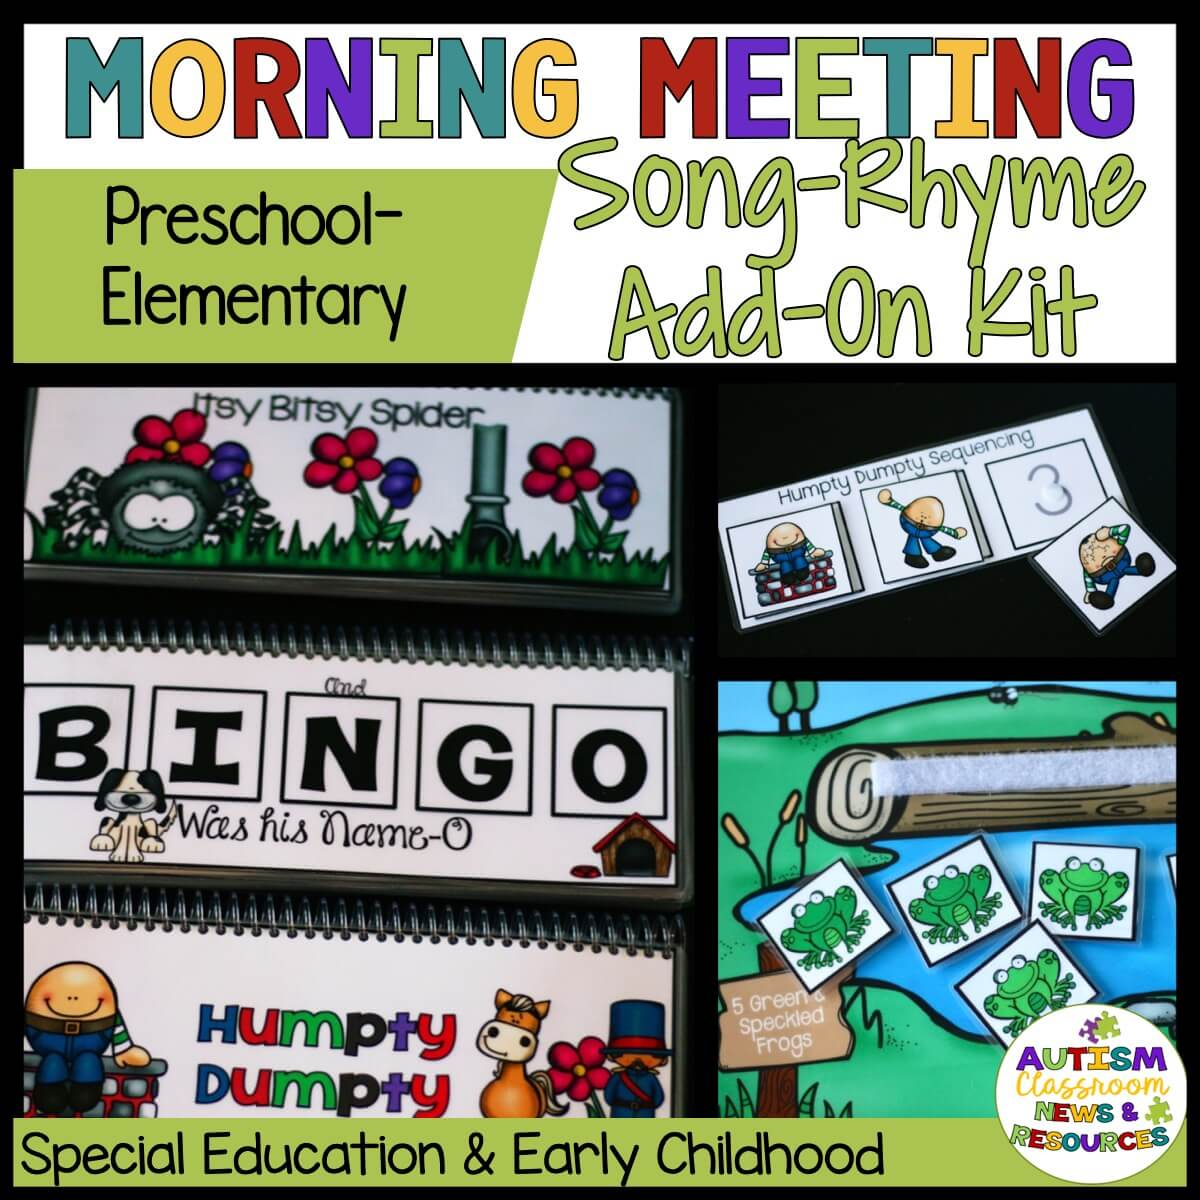 Morning meeting songs and rhymes add on lincludes bingo, humpty dumpty and others all with visuals for choice boards and to use during the group.